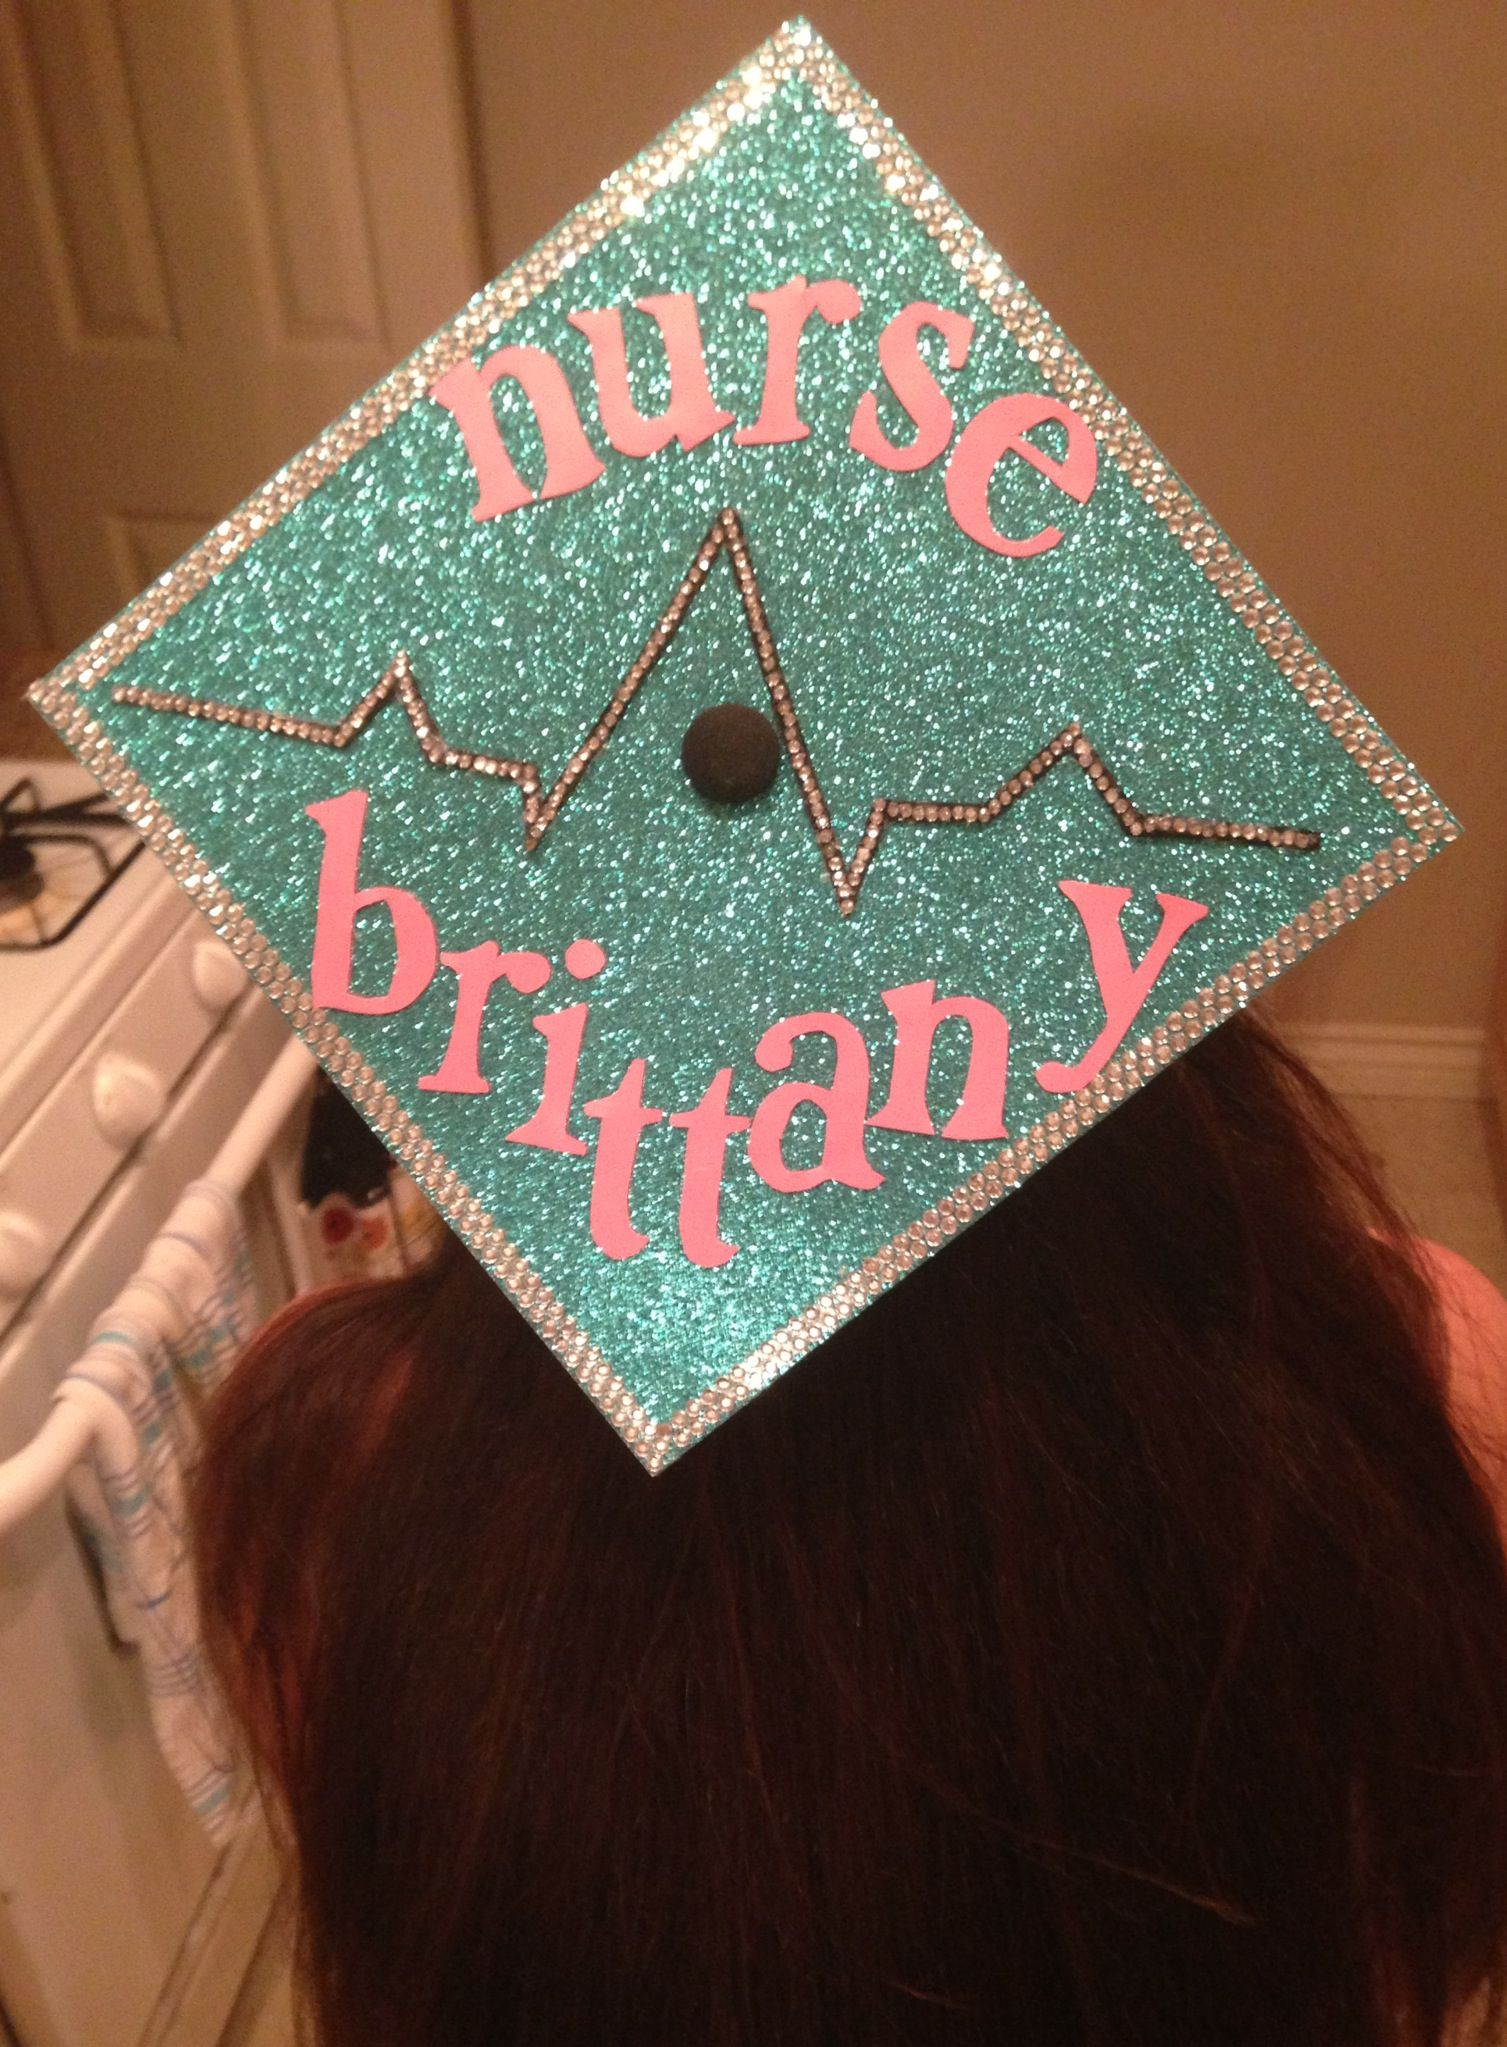 I decorated my graduation cap for my college graduation ...